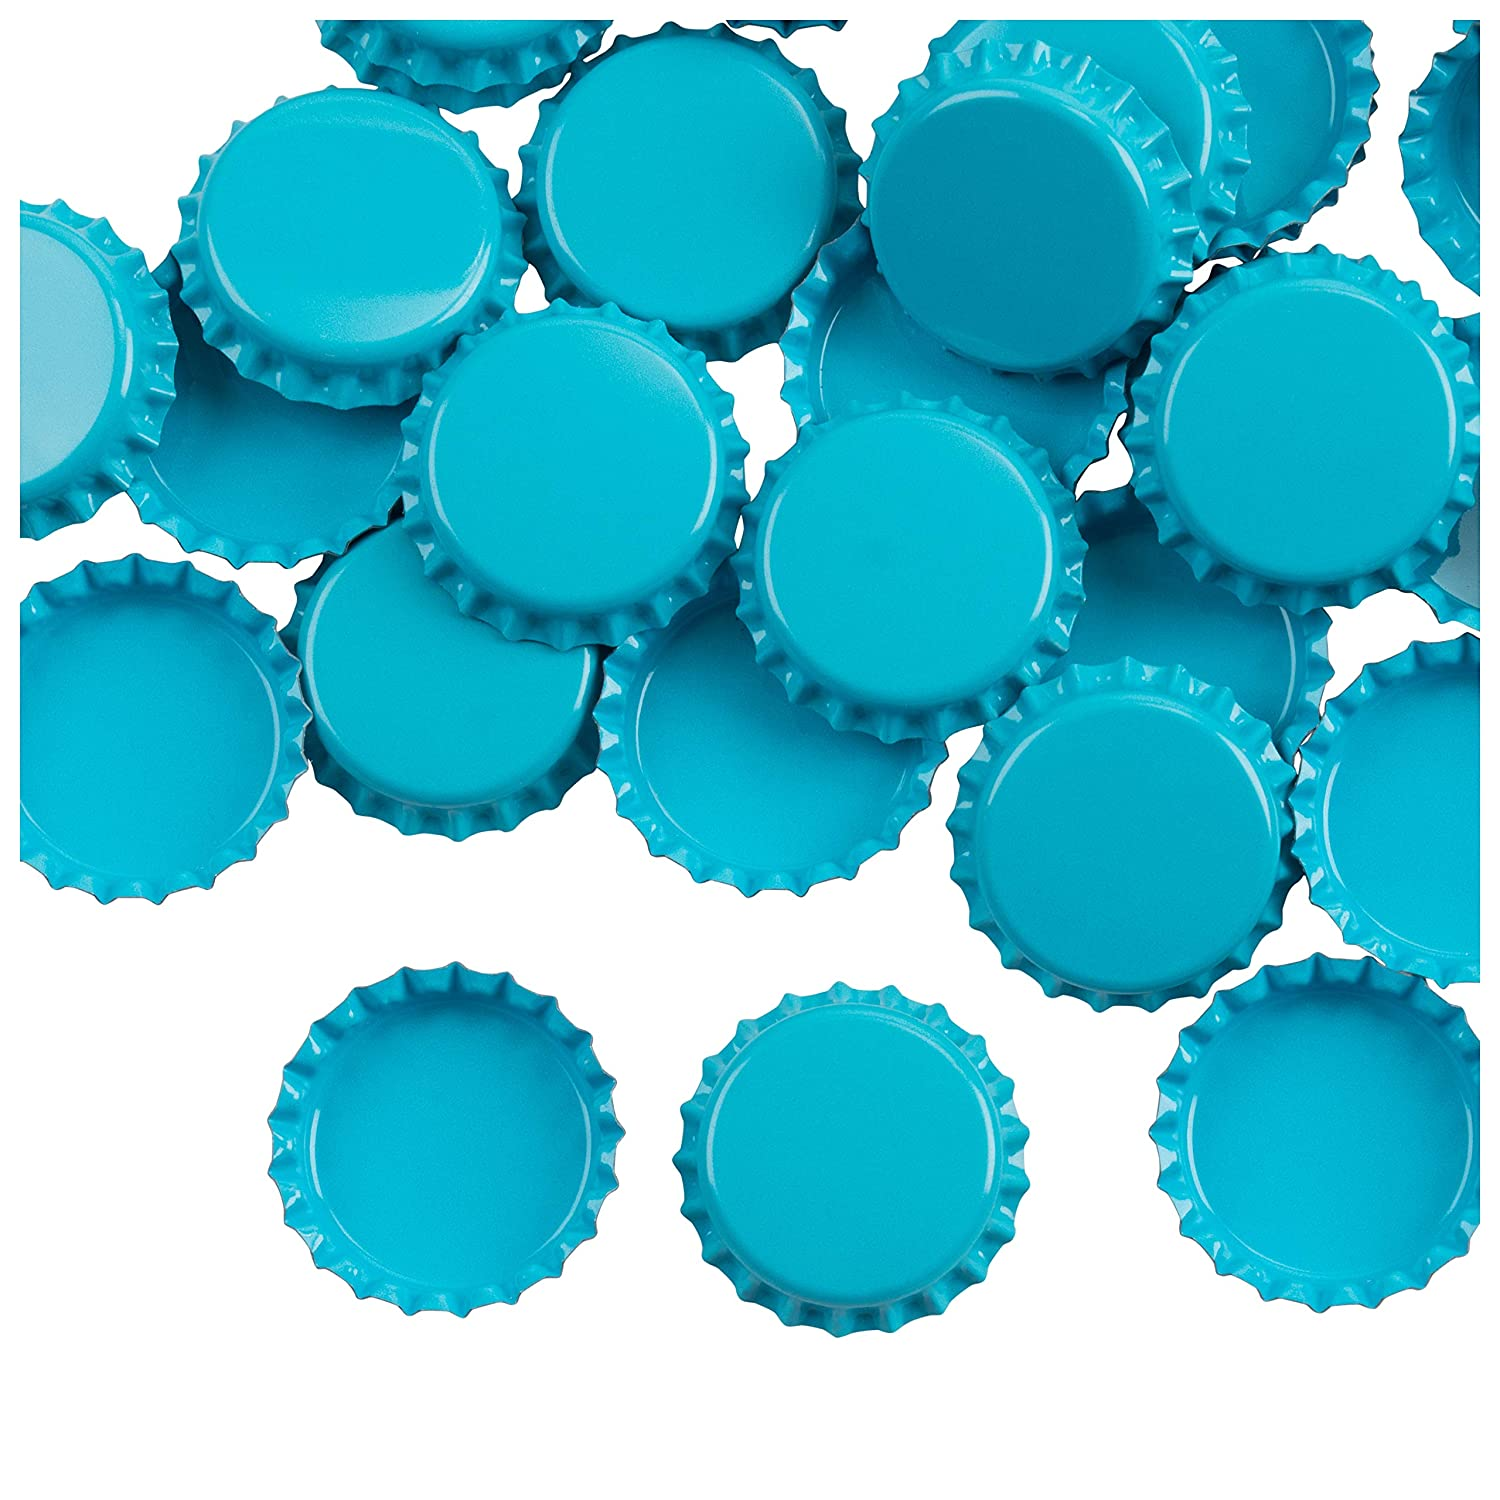 Bottle Caps- 120-Pack Craft Crown Bottle Caps, Decorative Bottle Caps,  Perfect for Jewelry Making, Hairbows, Pendants DIY, Scrapbooking, Blue, 1  Inch